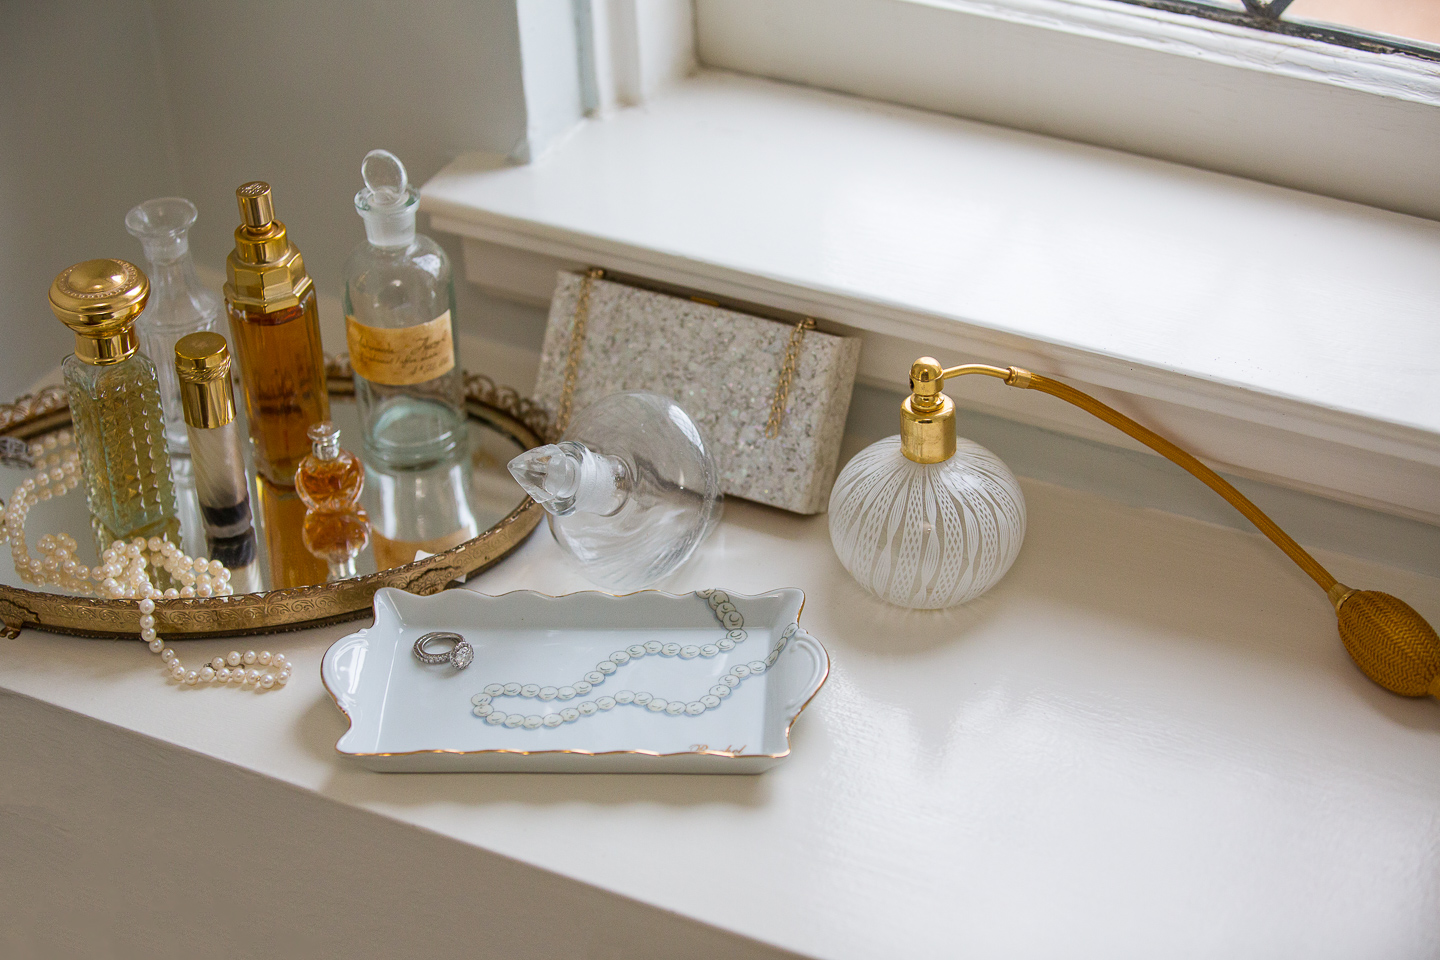 The pearl scalloped tray